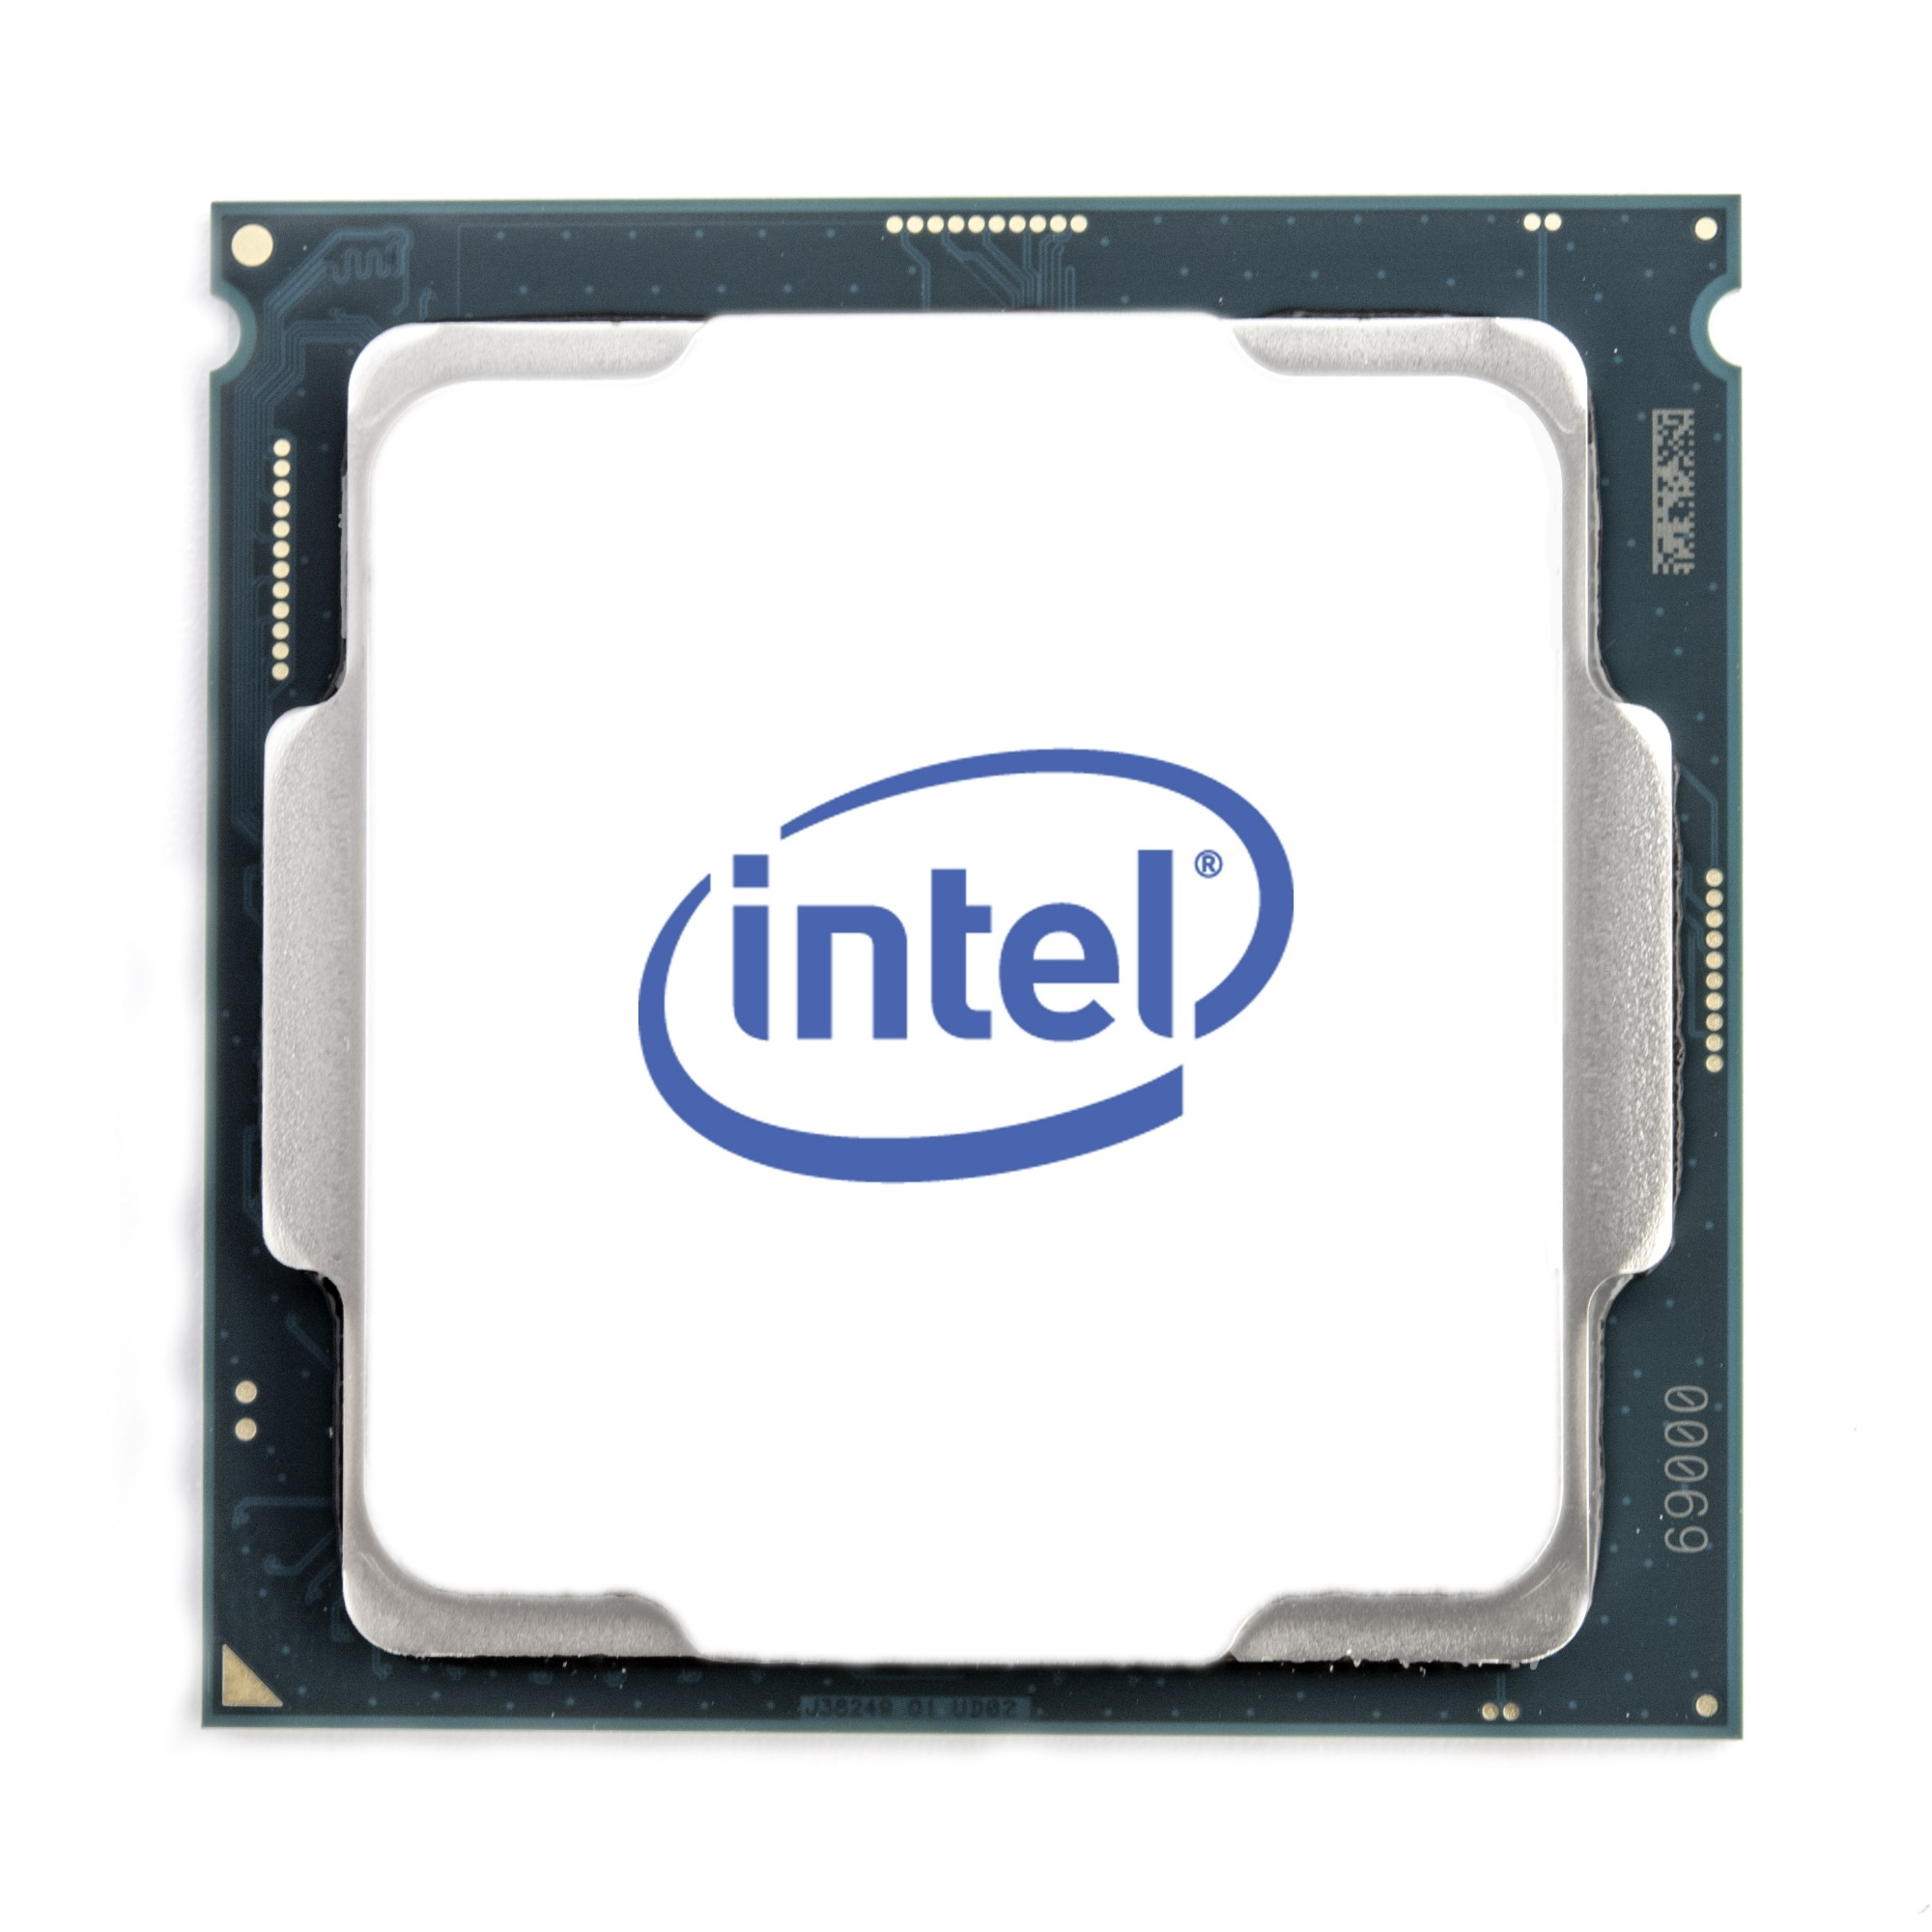 INTEL XEON 6242 PROCESSOR 2.8 GHZ 22 MB